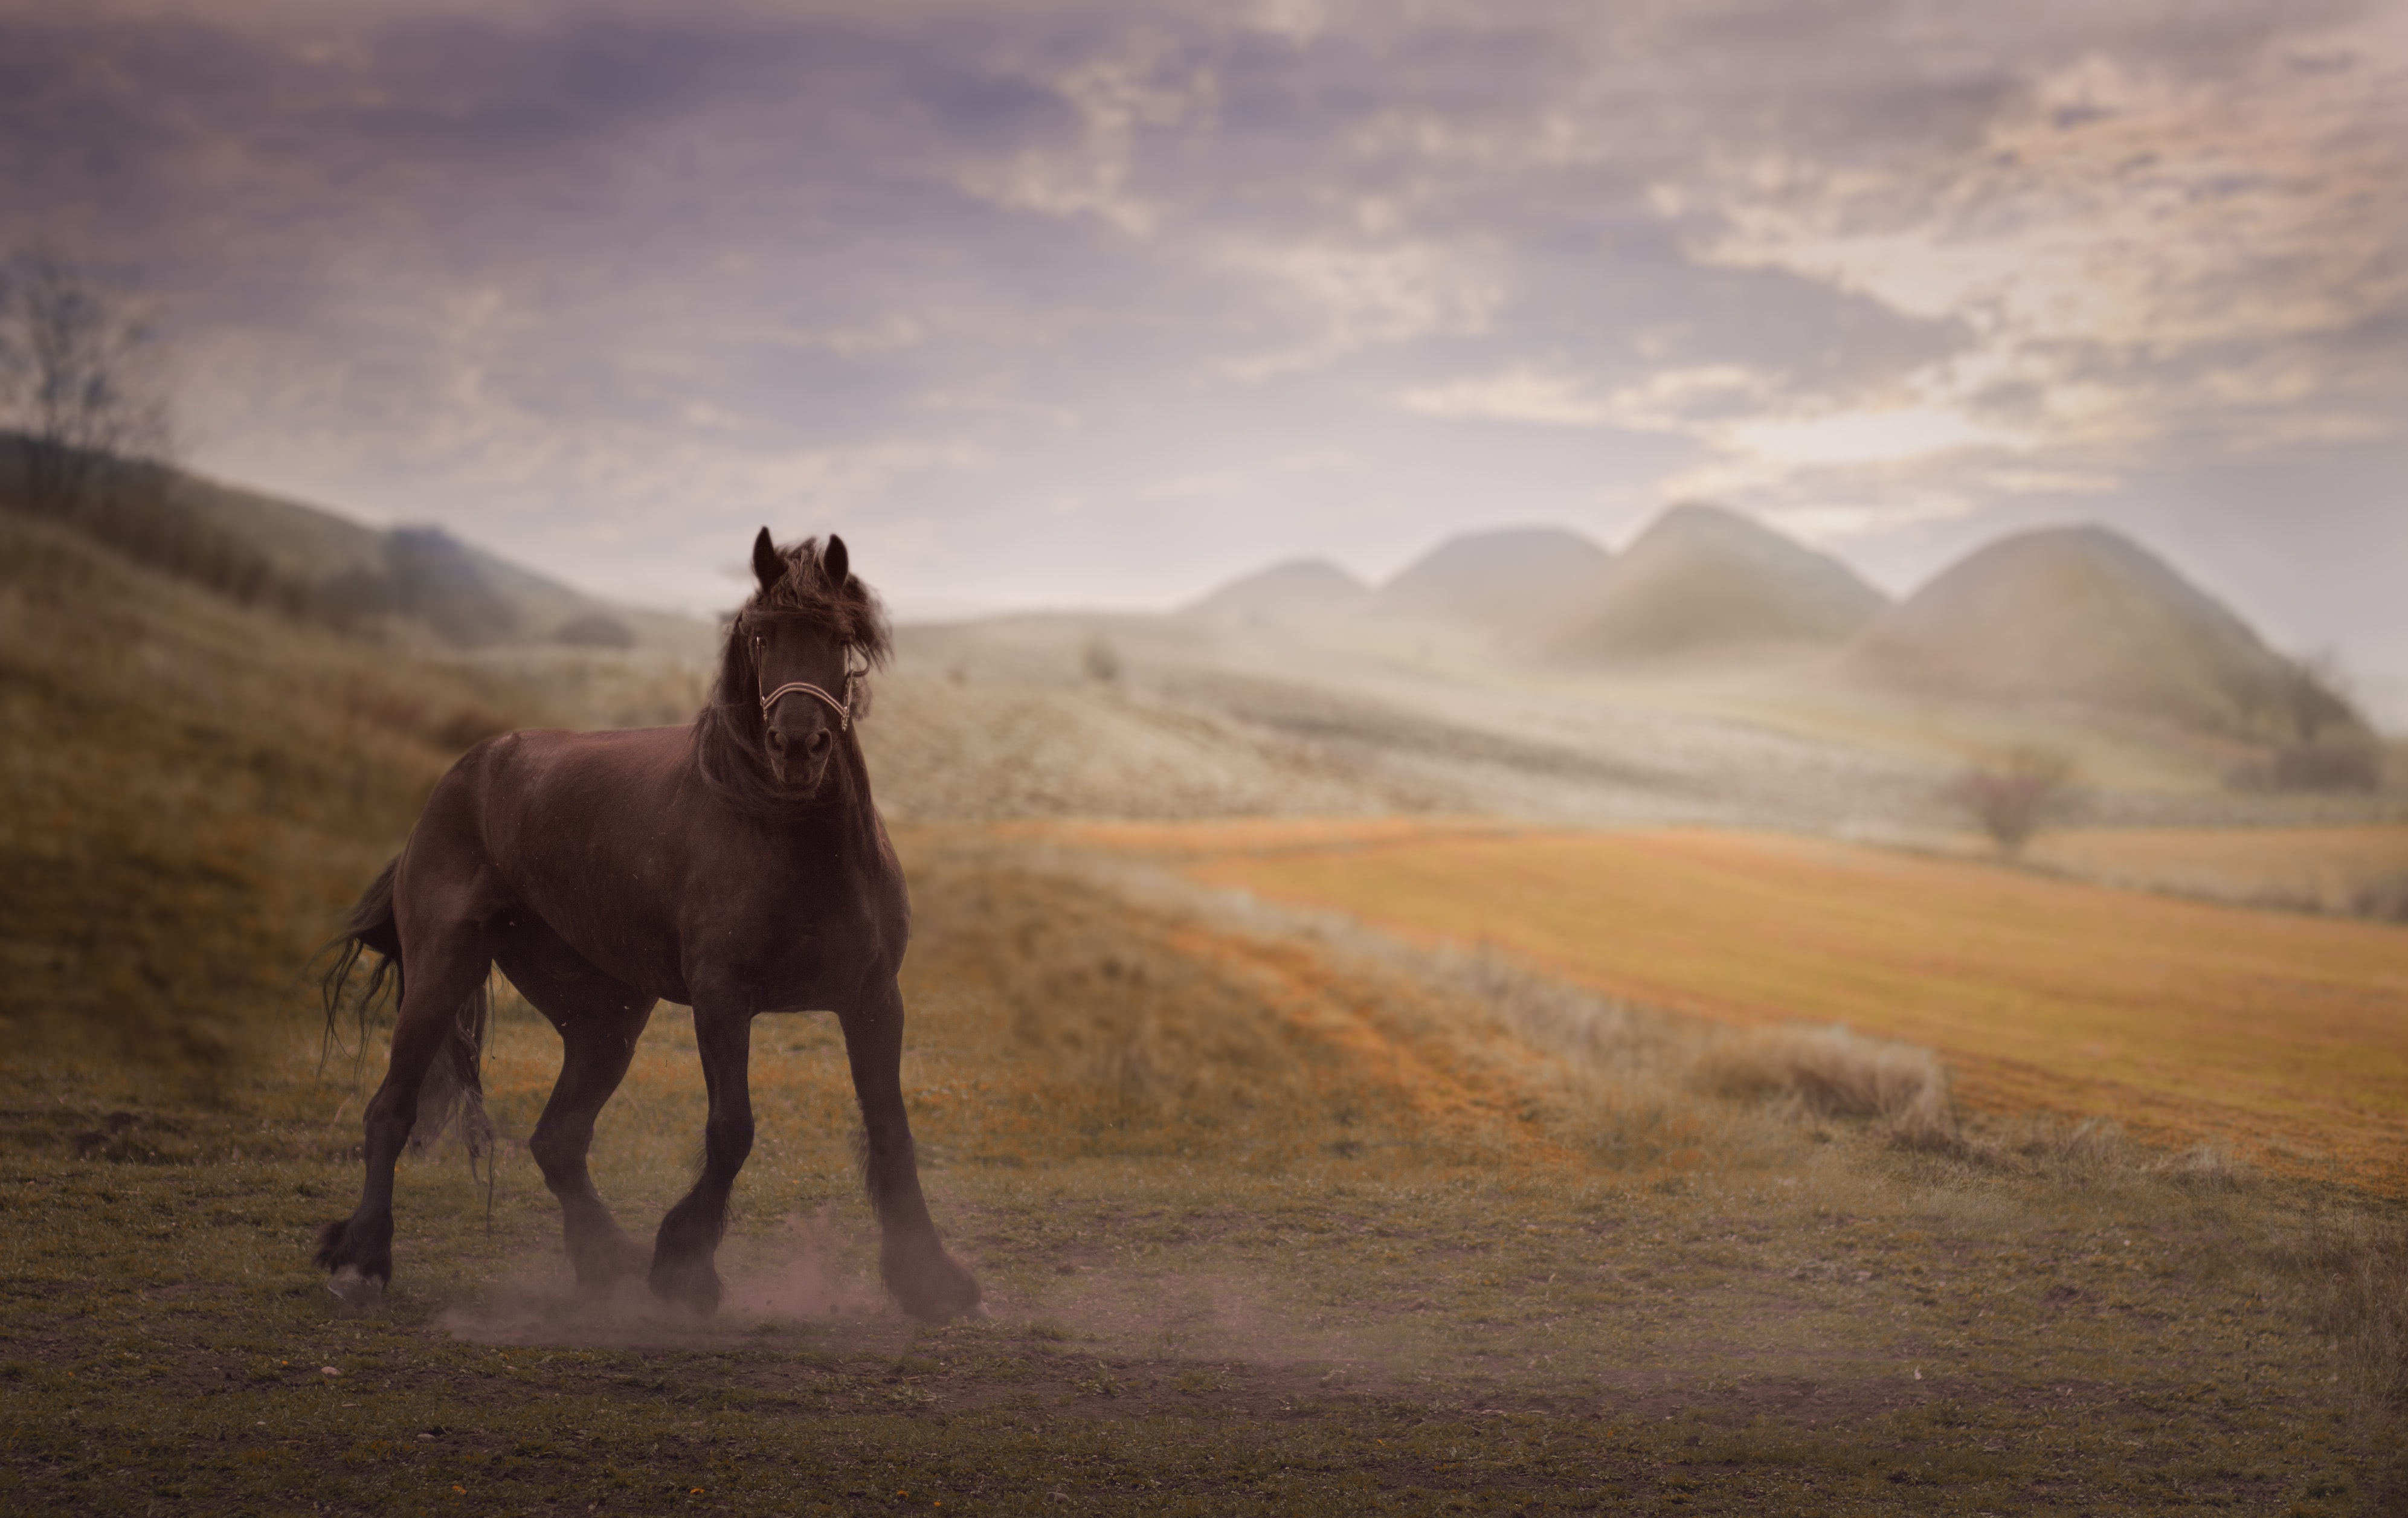 Wild stallion gallops through a dusty field in the country